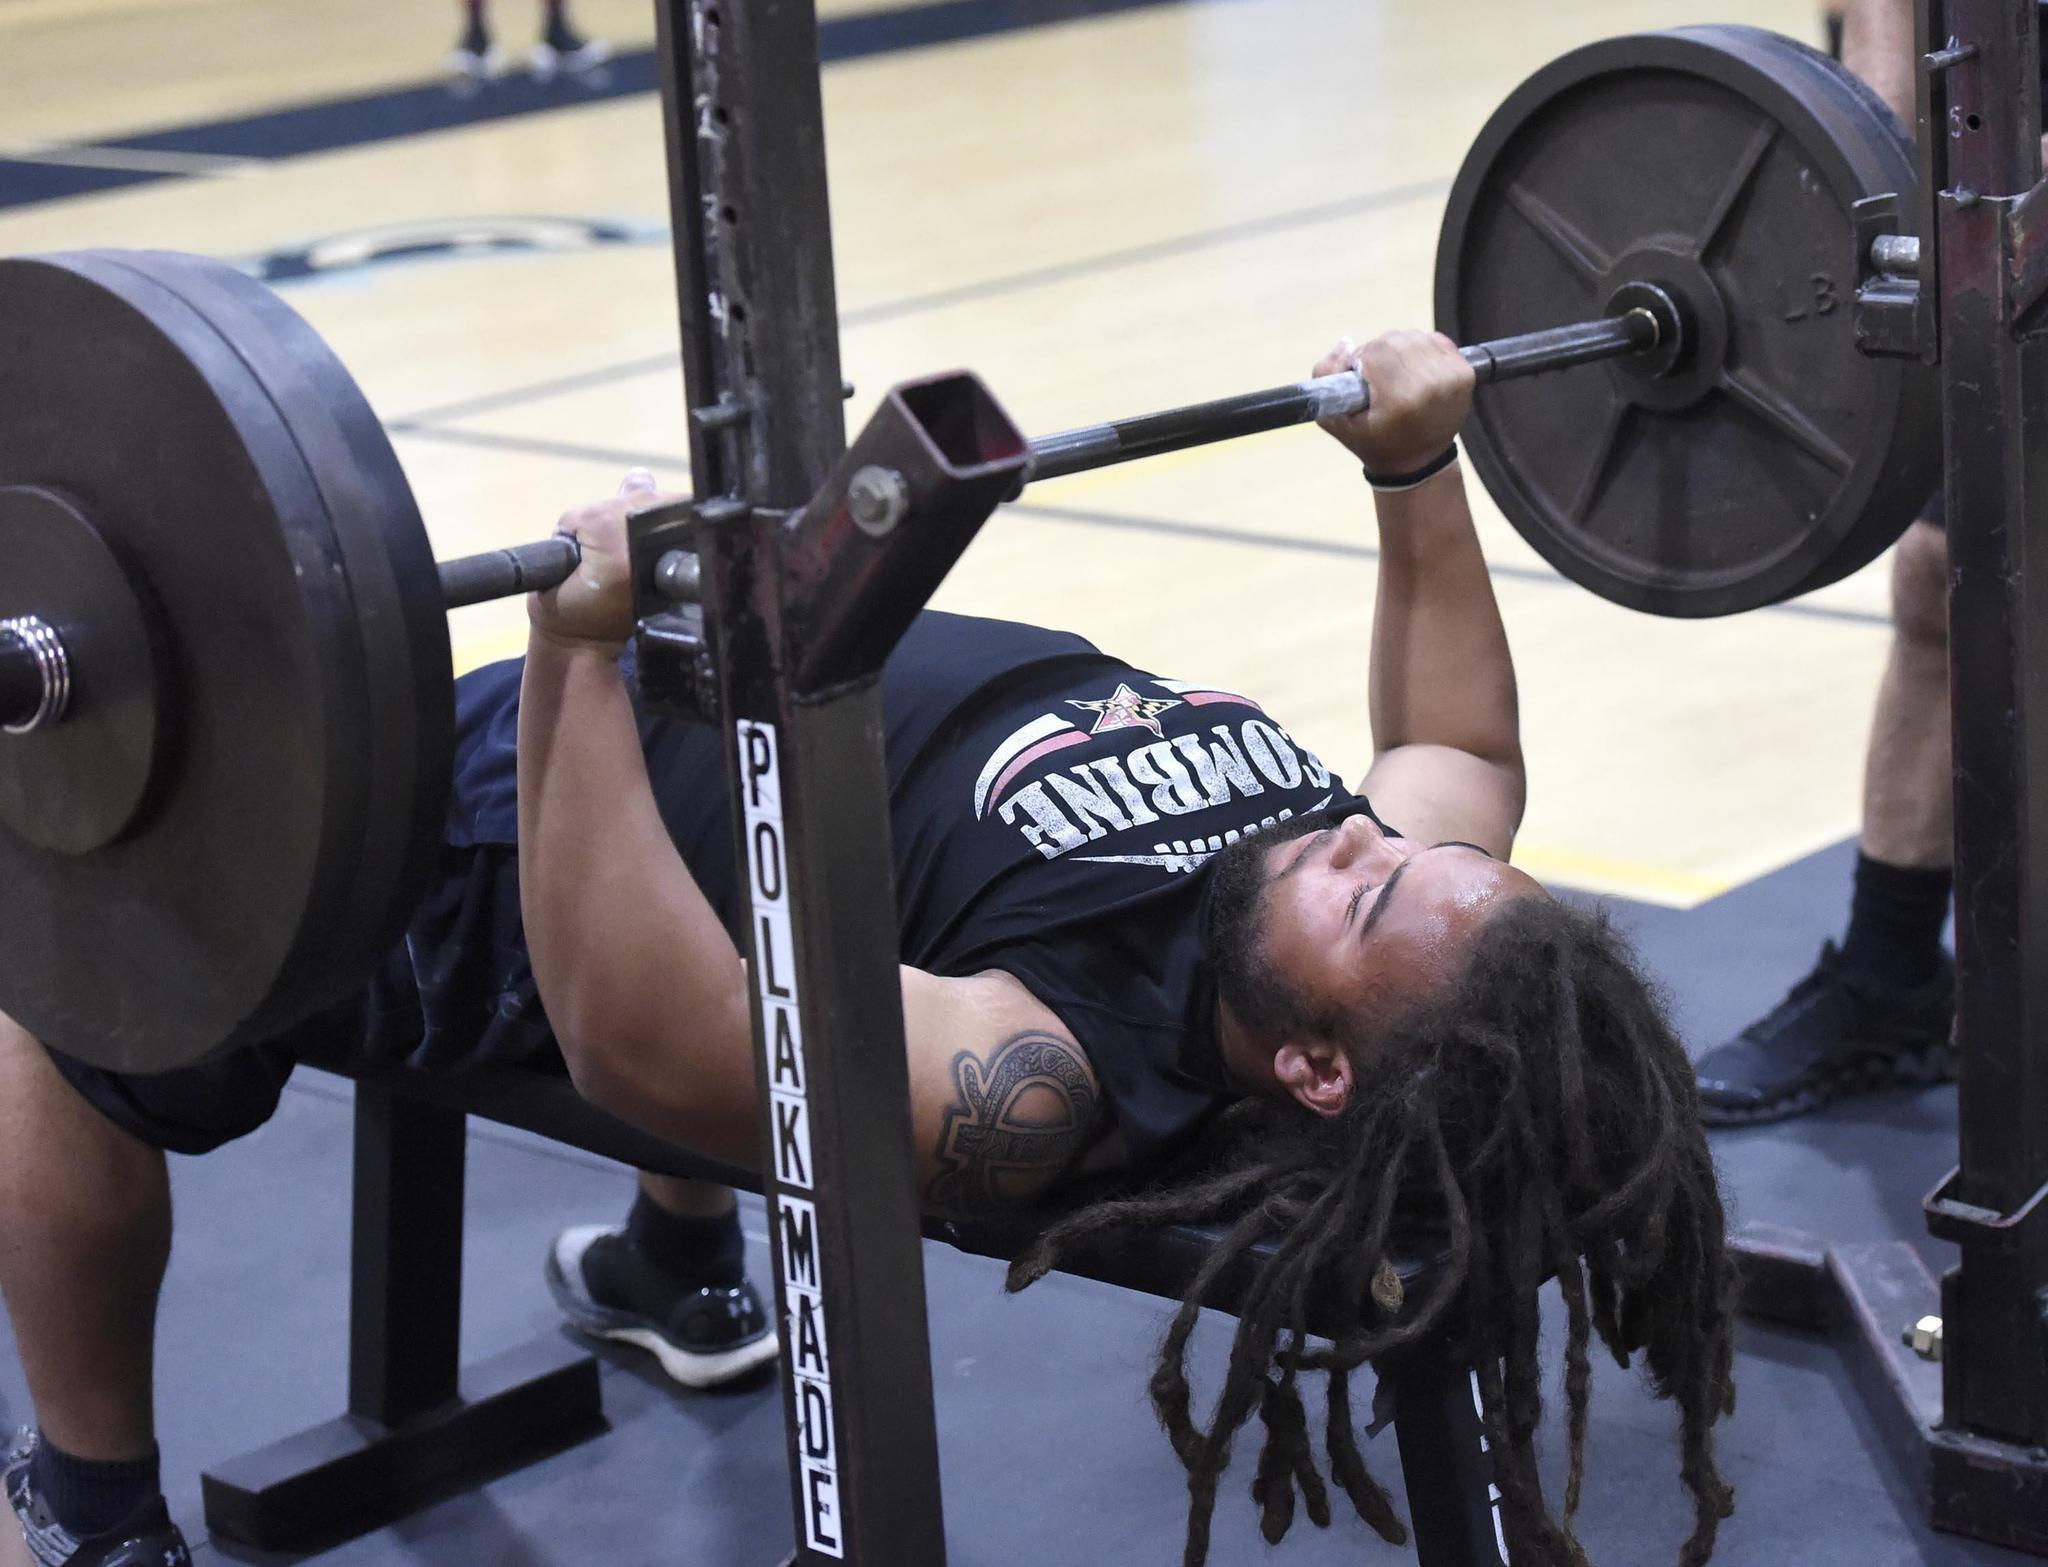 Weightlifting: Strength and skill at annual county competition - Carroll County Times